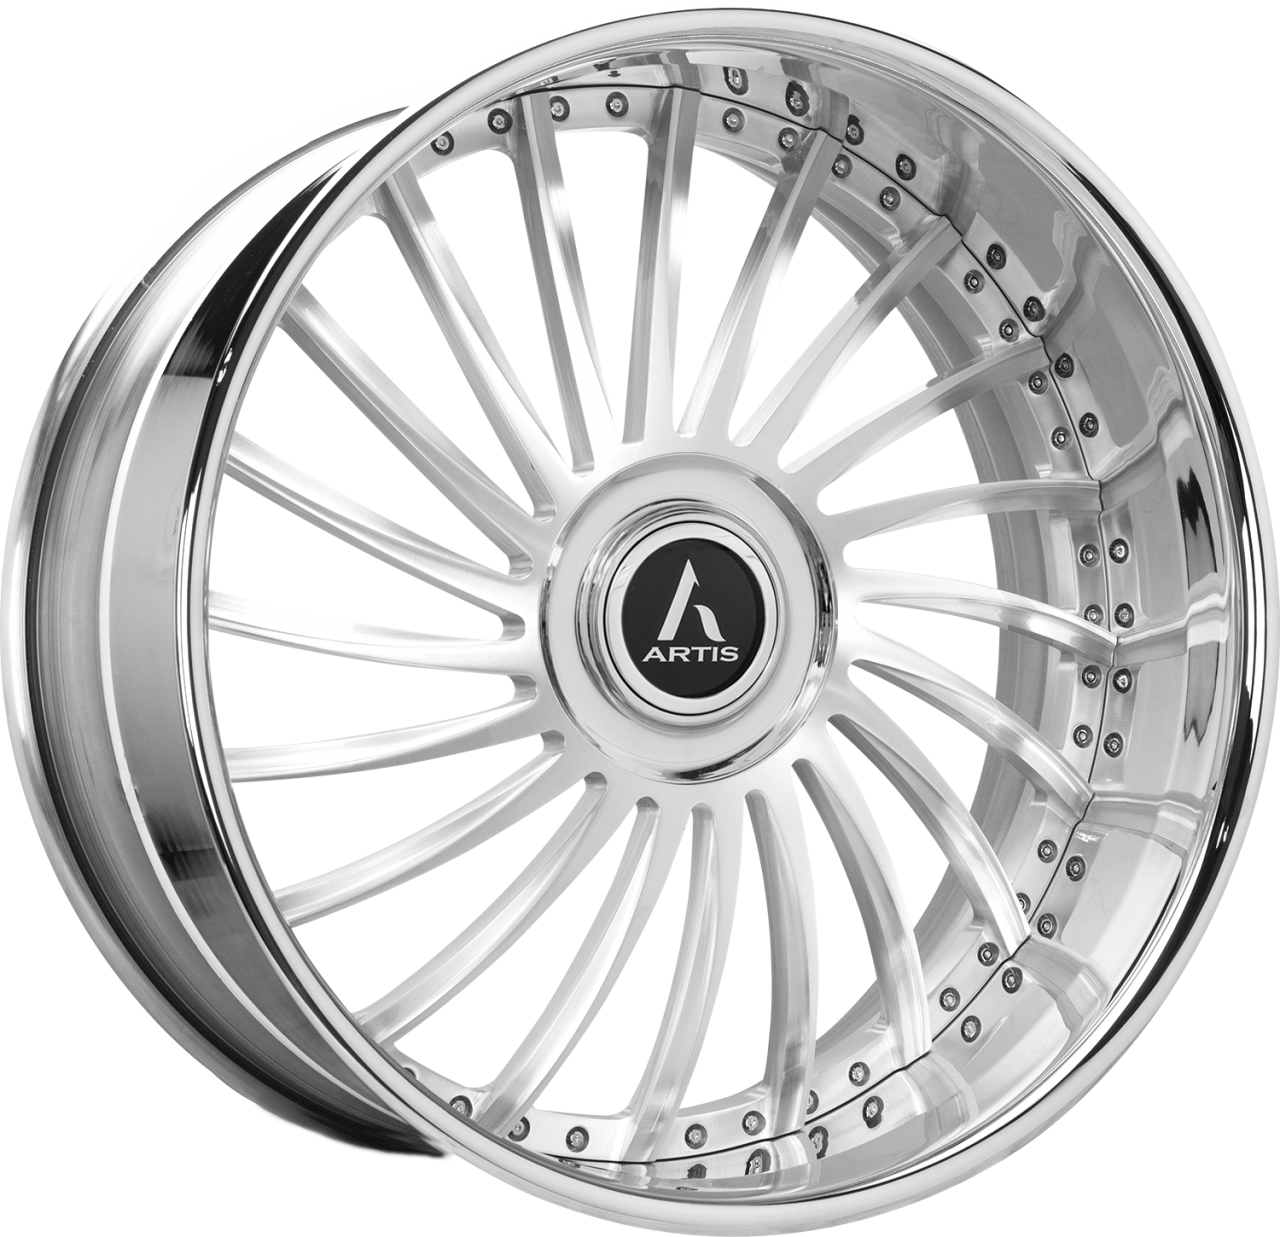 Artis Forged International wheel with Brushed with XL Floater Cap finish